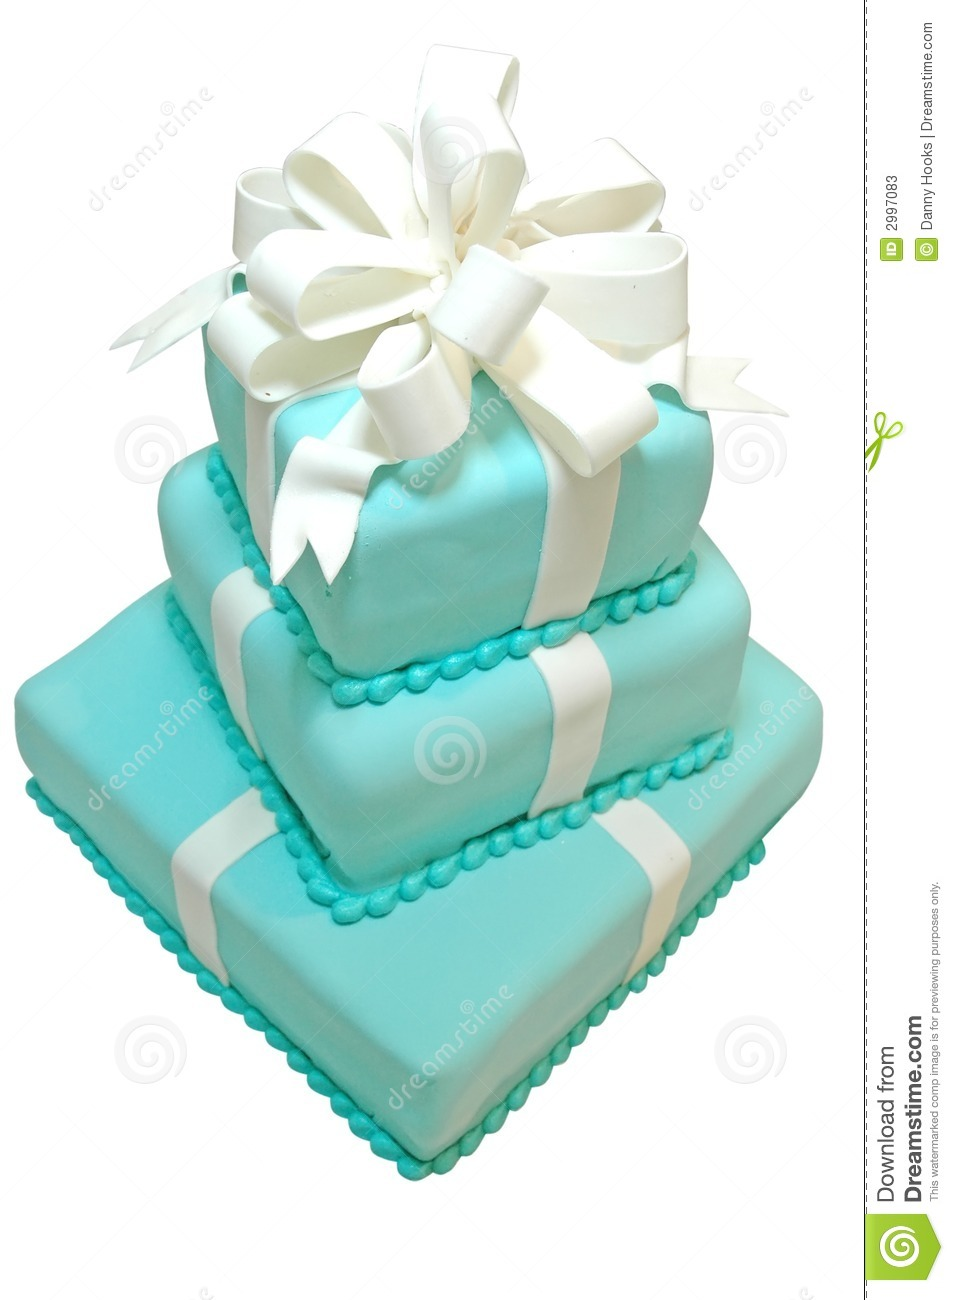 Formal birthday cake isolated on white background with clipping path.